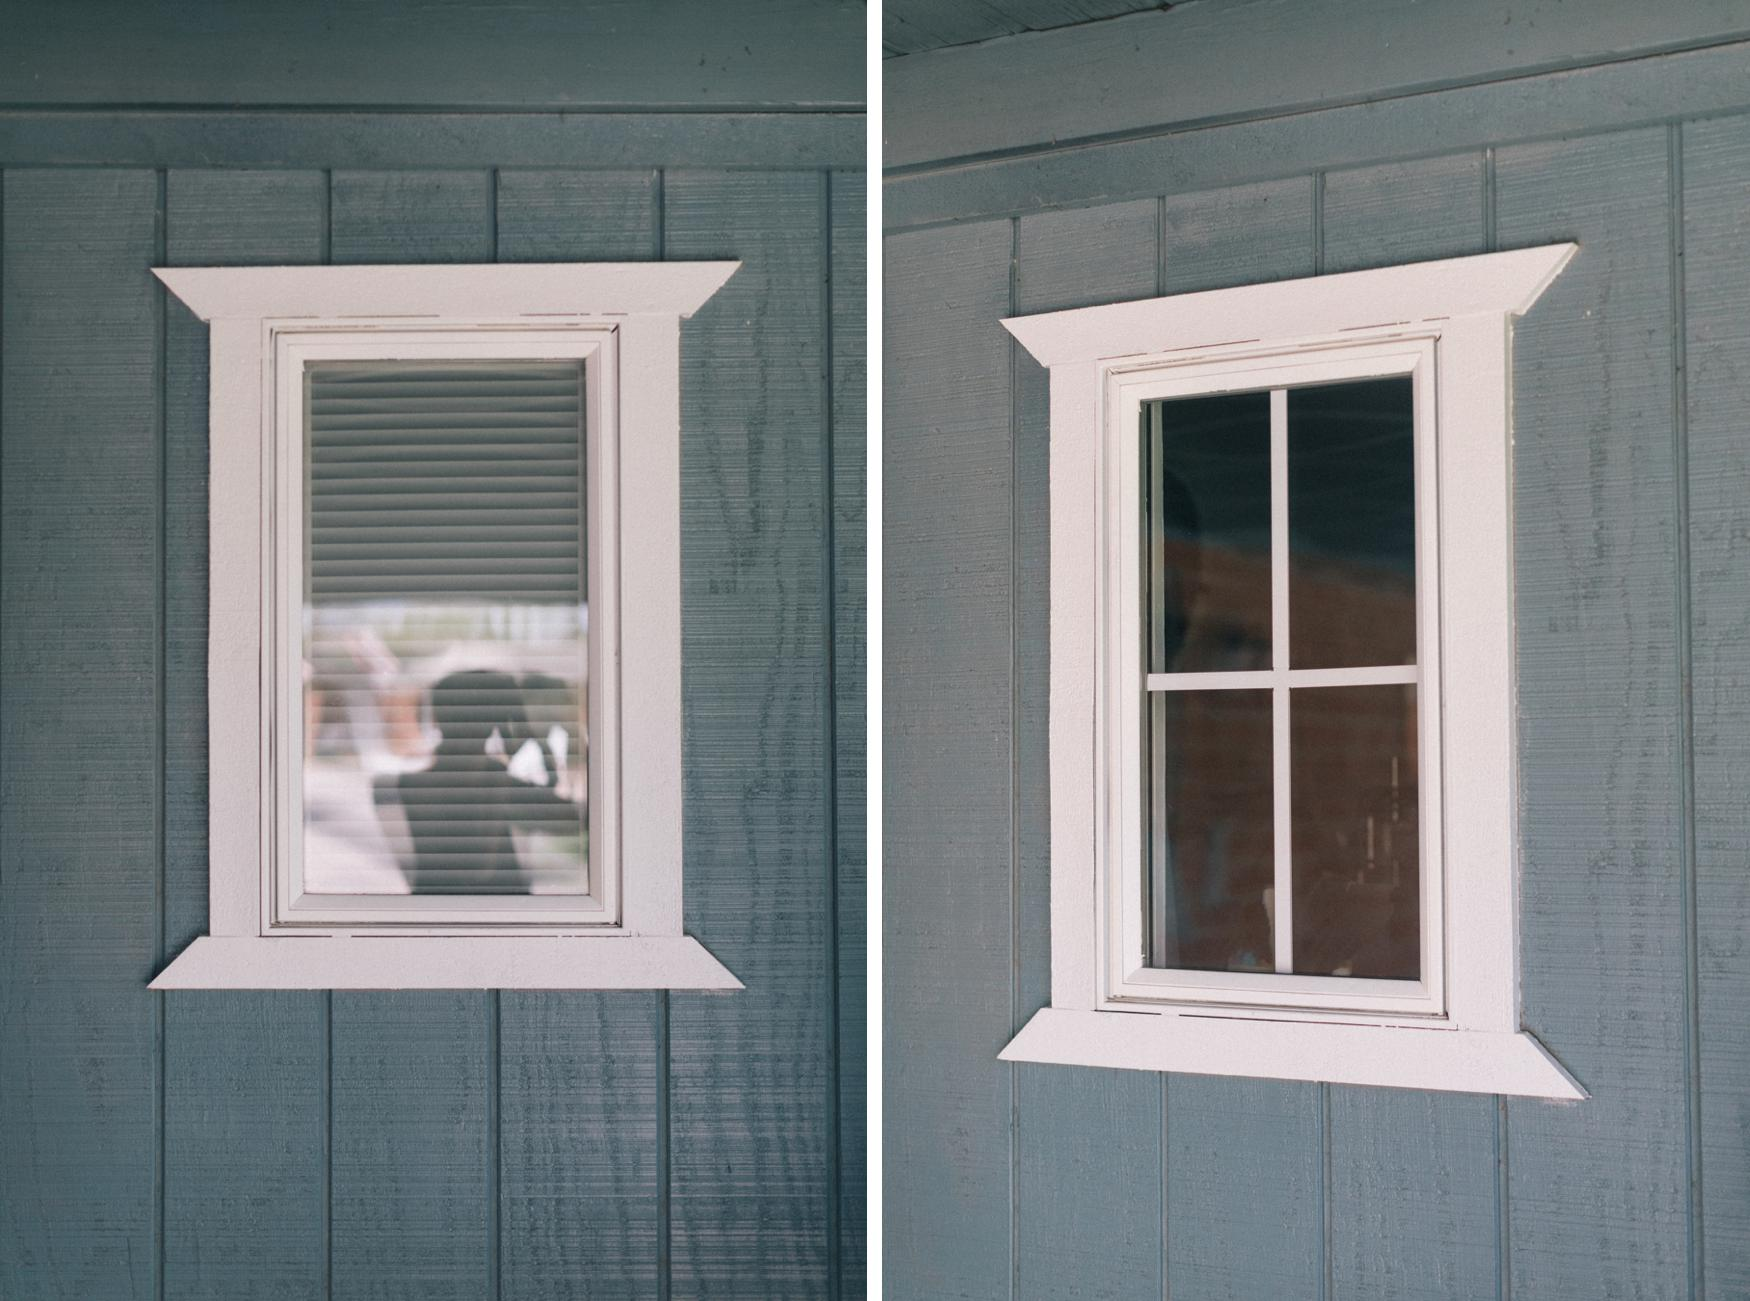 adding window panes to already existing windows so easy with new panes